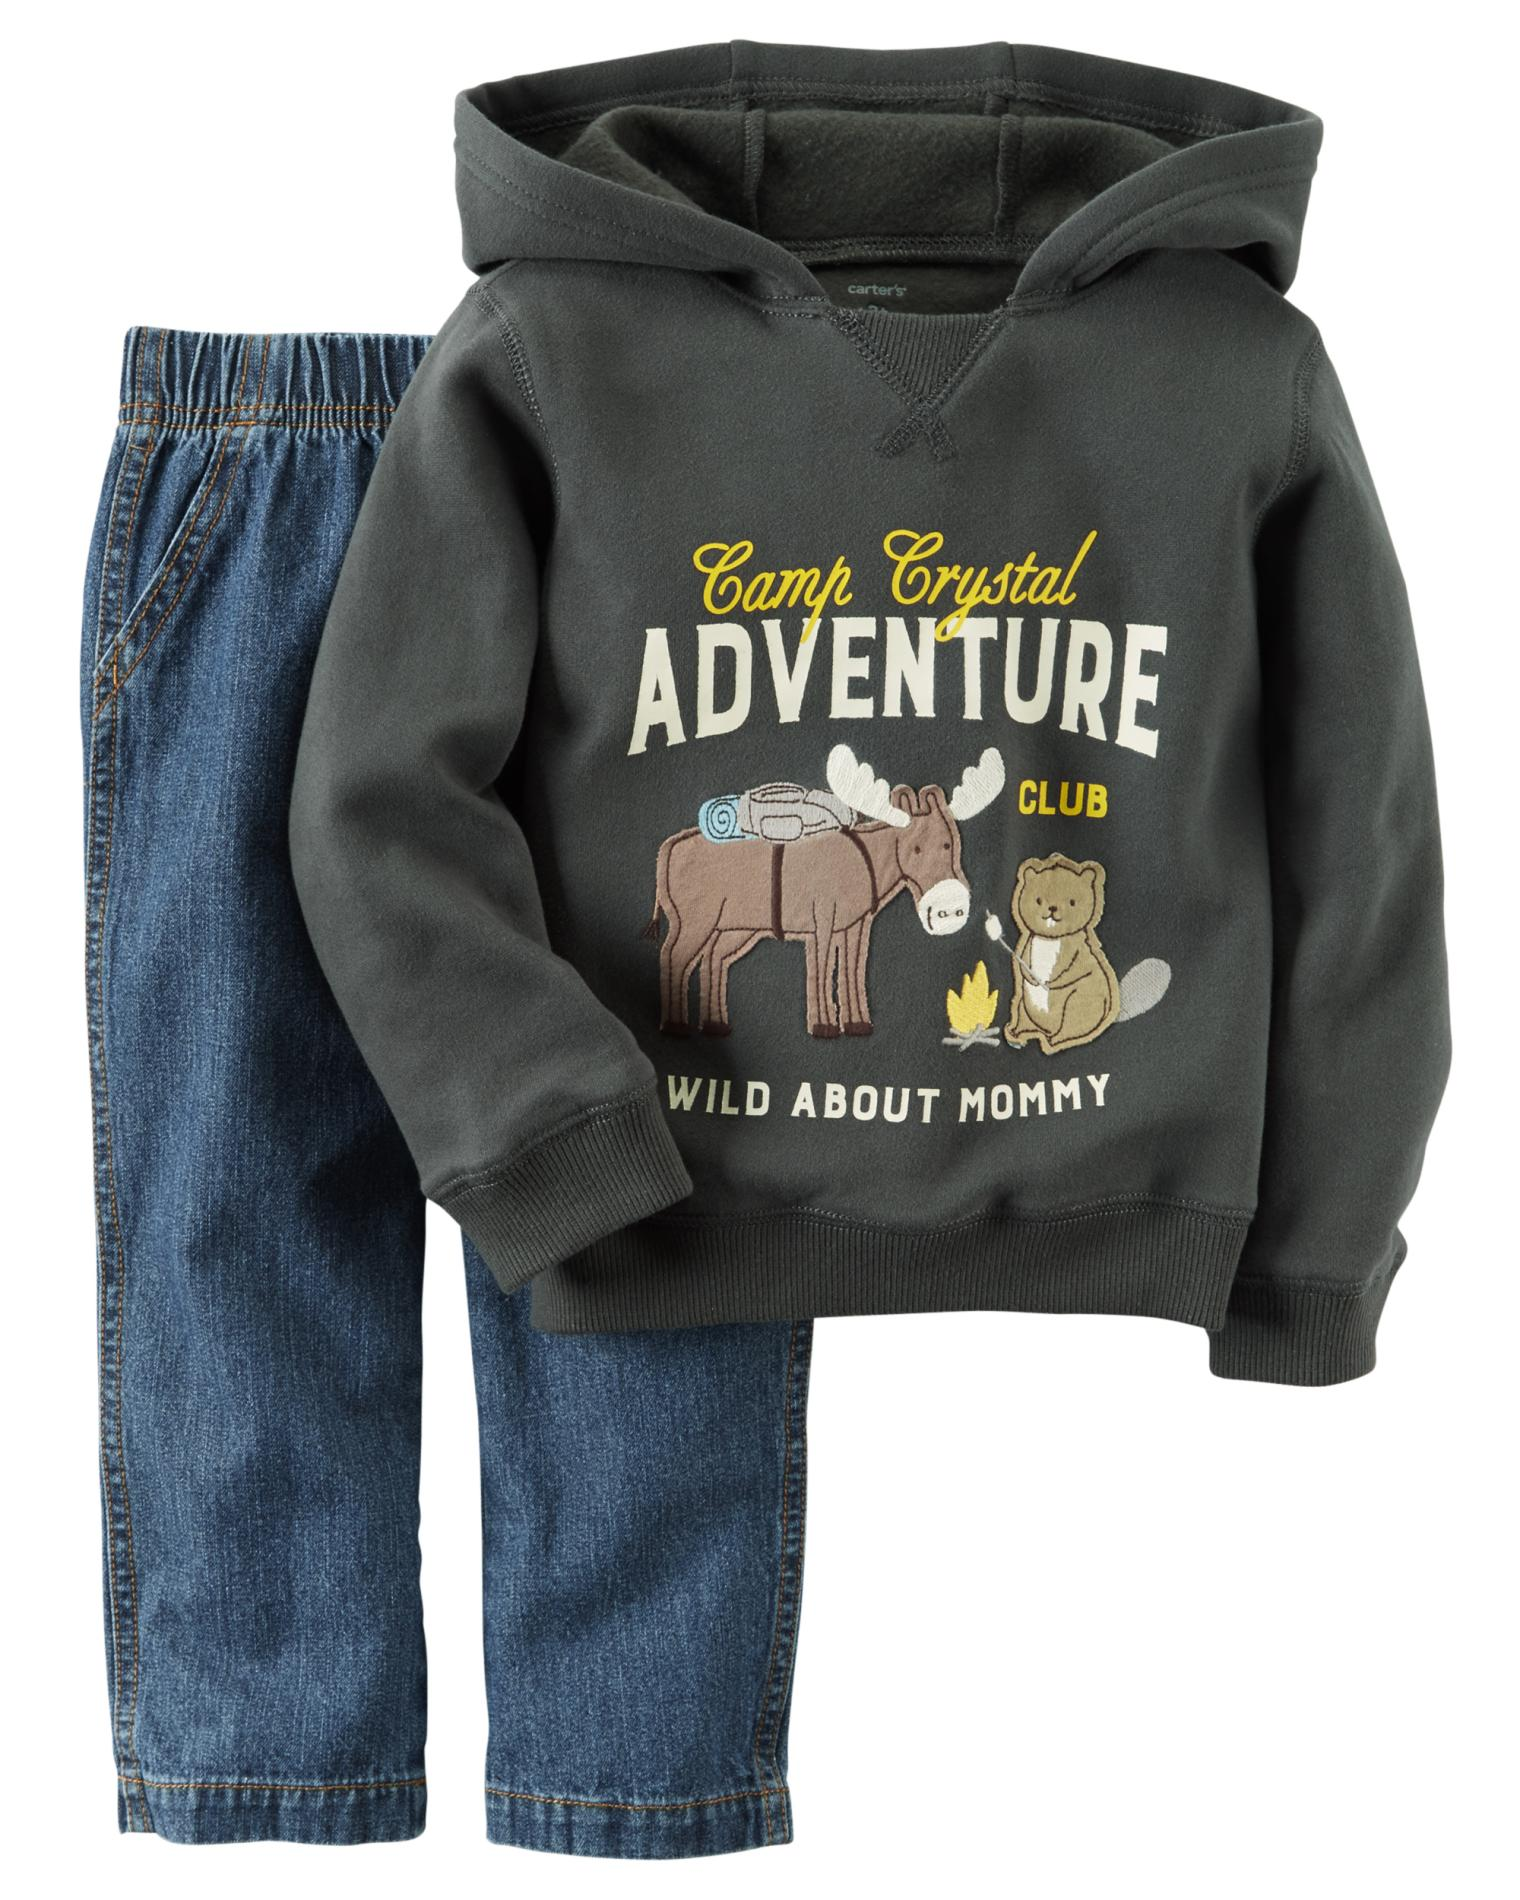 Carter's Newborn & Infant Boys' Graphic Hoodie & Jeans - Wild About Mommy PartNumber: 029VA92898212P MfgPartNumber: 229G265